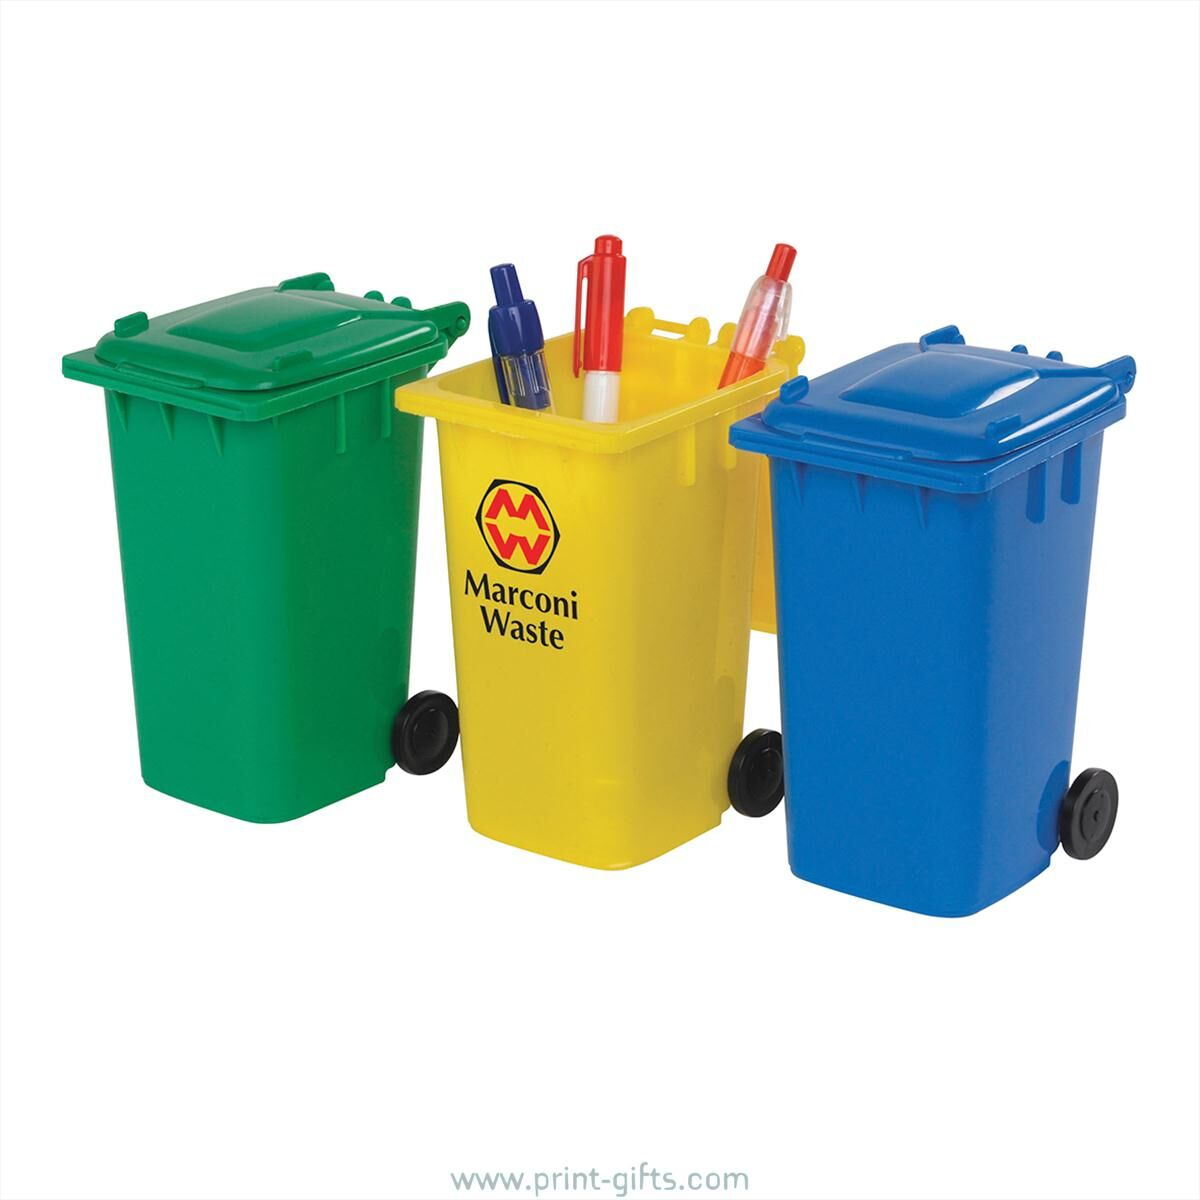 Eco Wheelie Bin Pencil Sharpeners - Green, Blue, Yellow